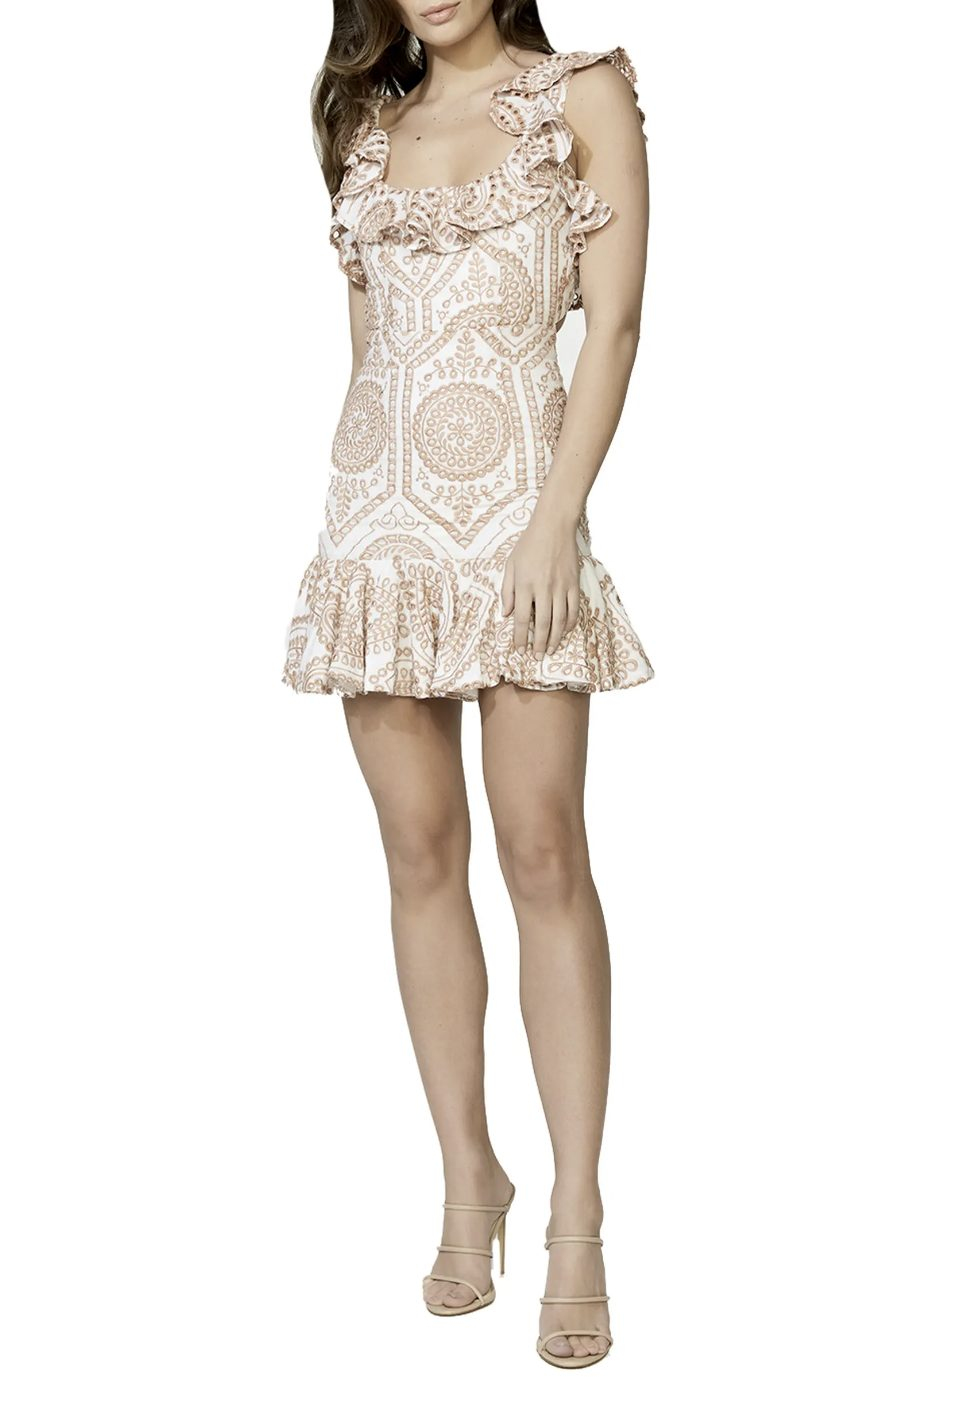 White and brown mini dress with ruffles